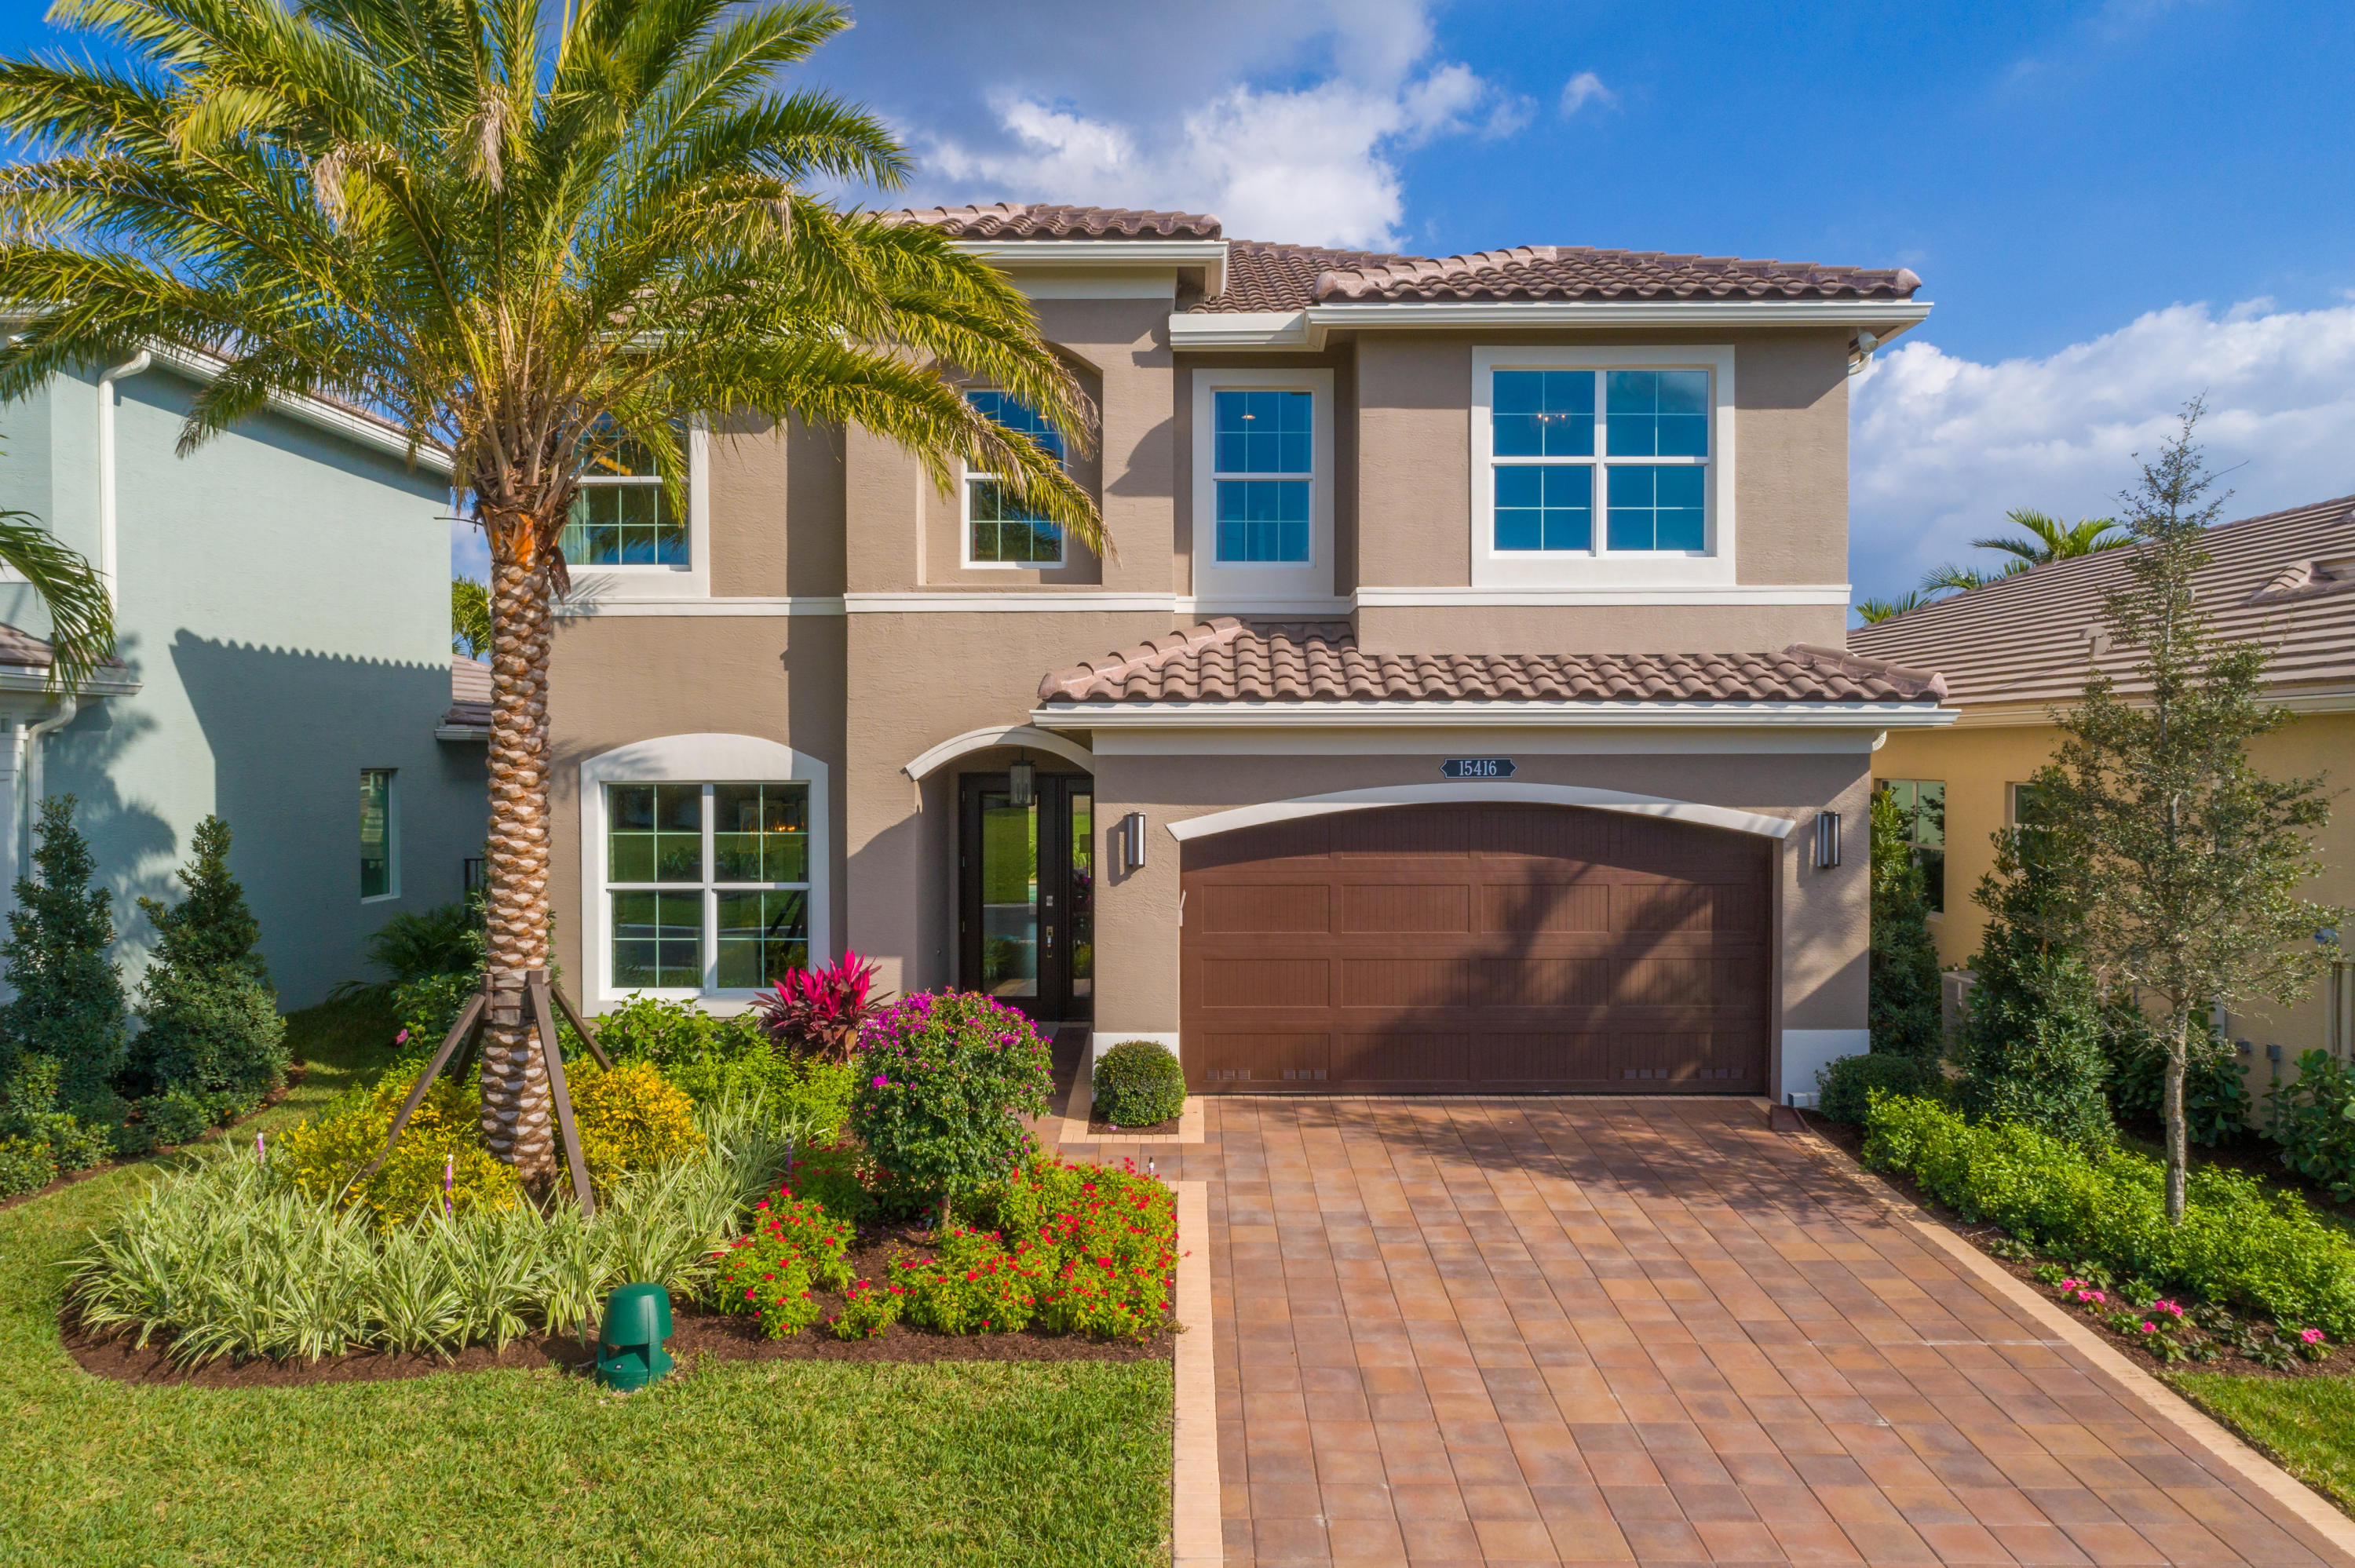 DAKOTA home 9679 Salty Bay Drive Delray Beach FL 33446